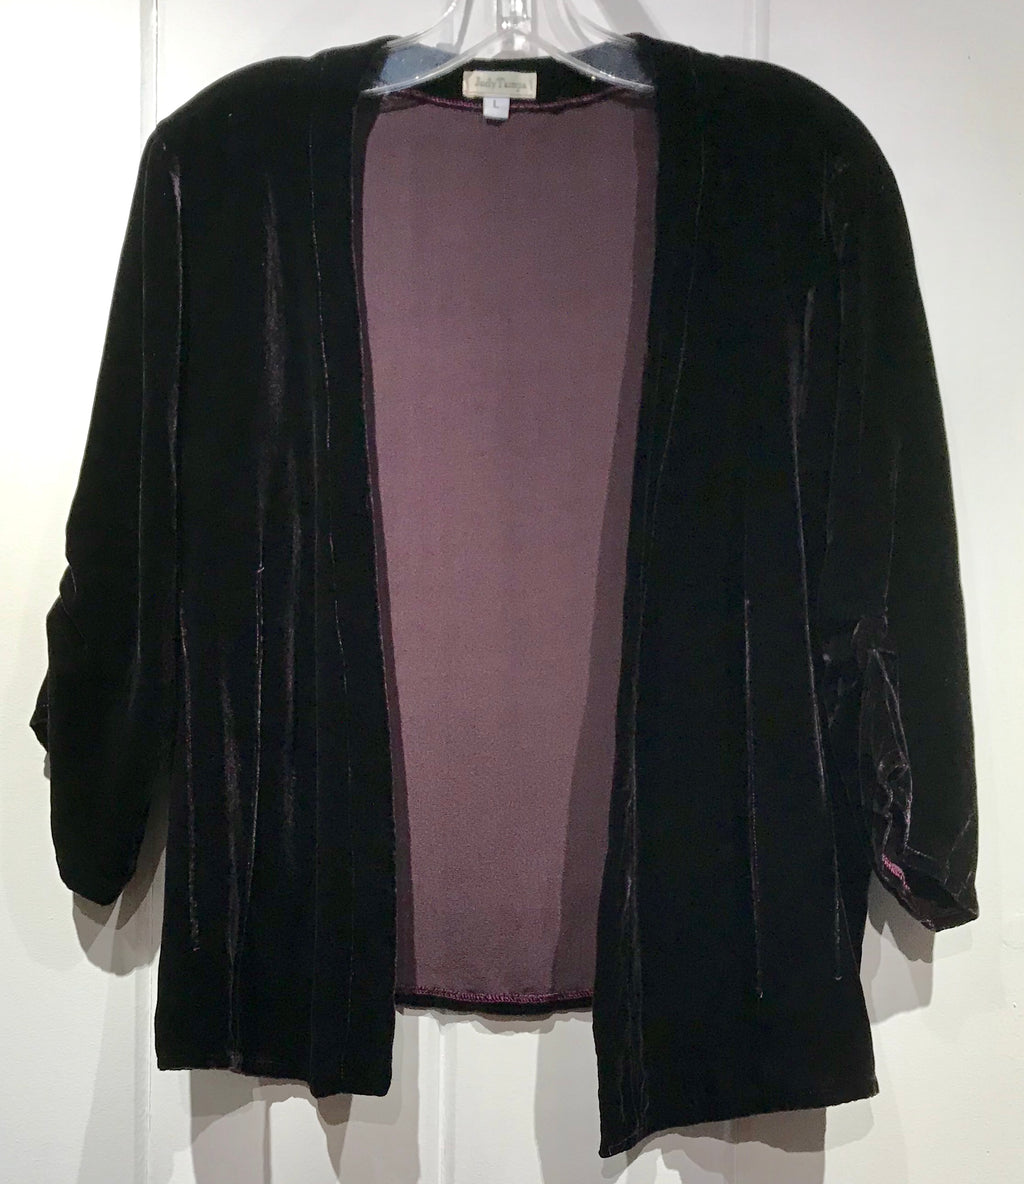 Judy Tampa Velvet Jacket in Plum in Size L on Sale